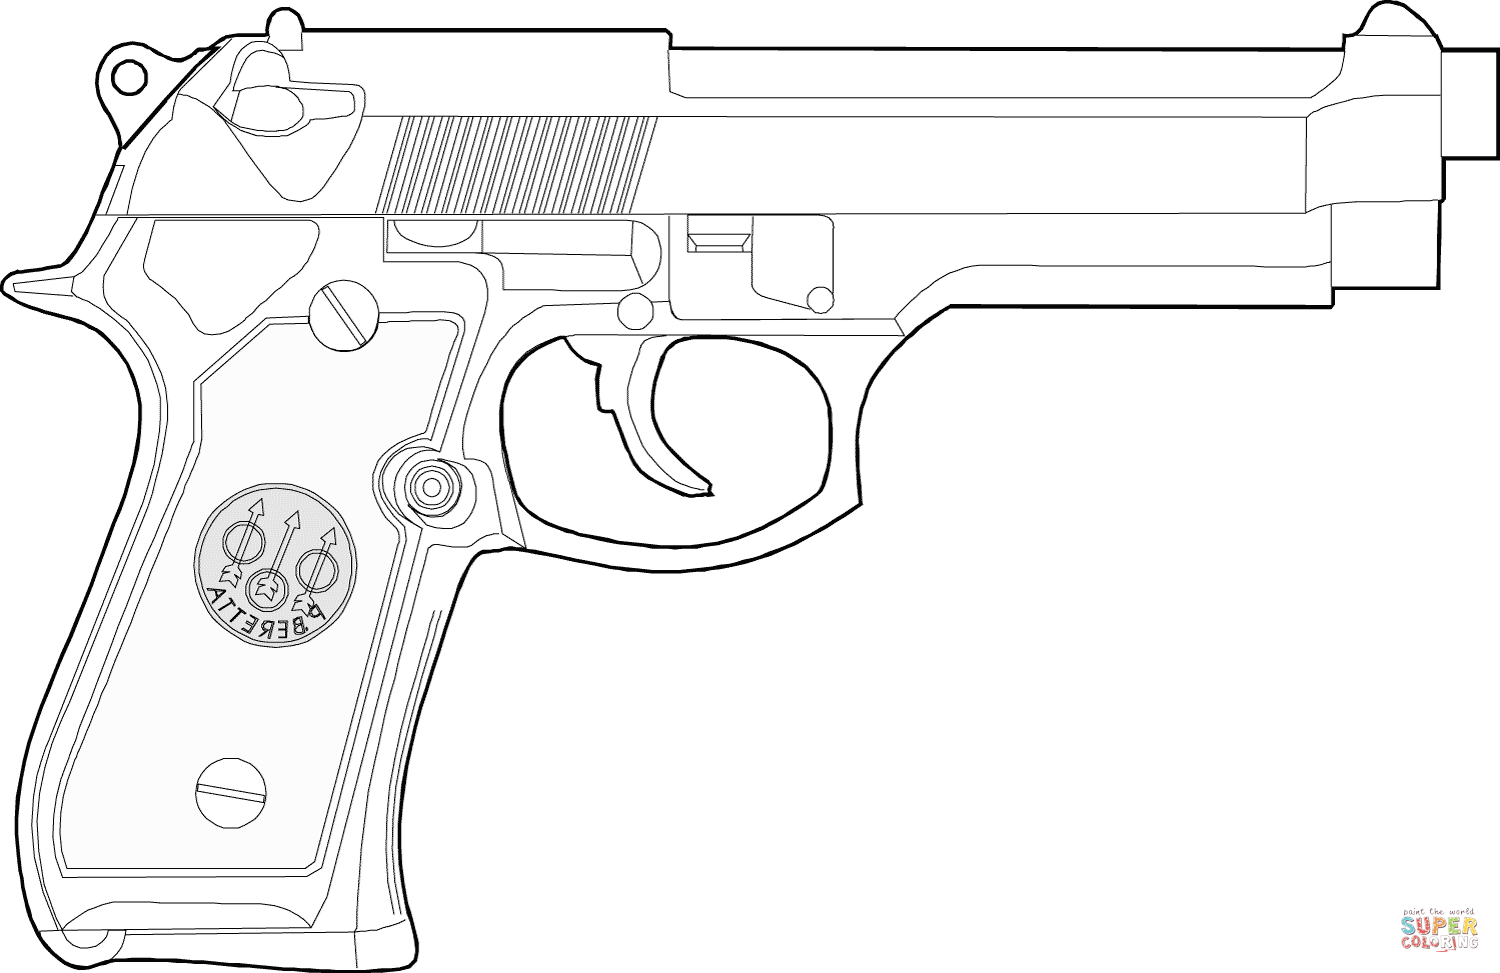 gun coloring pictures beretta handgun coloring page free printable coloring pages pictures gun coloring